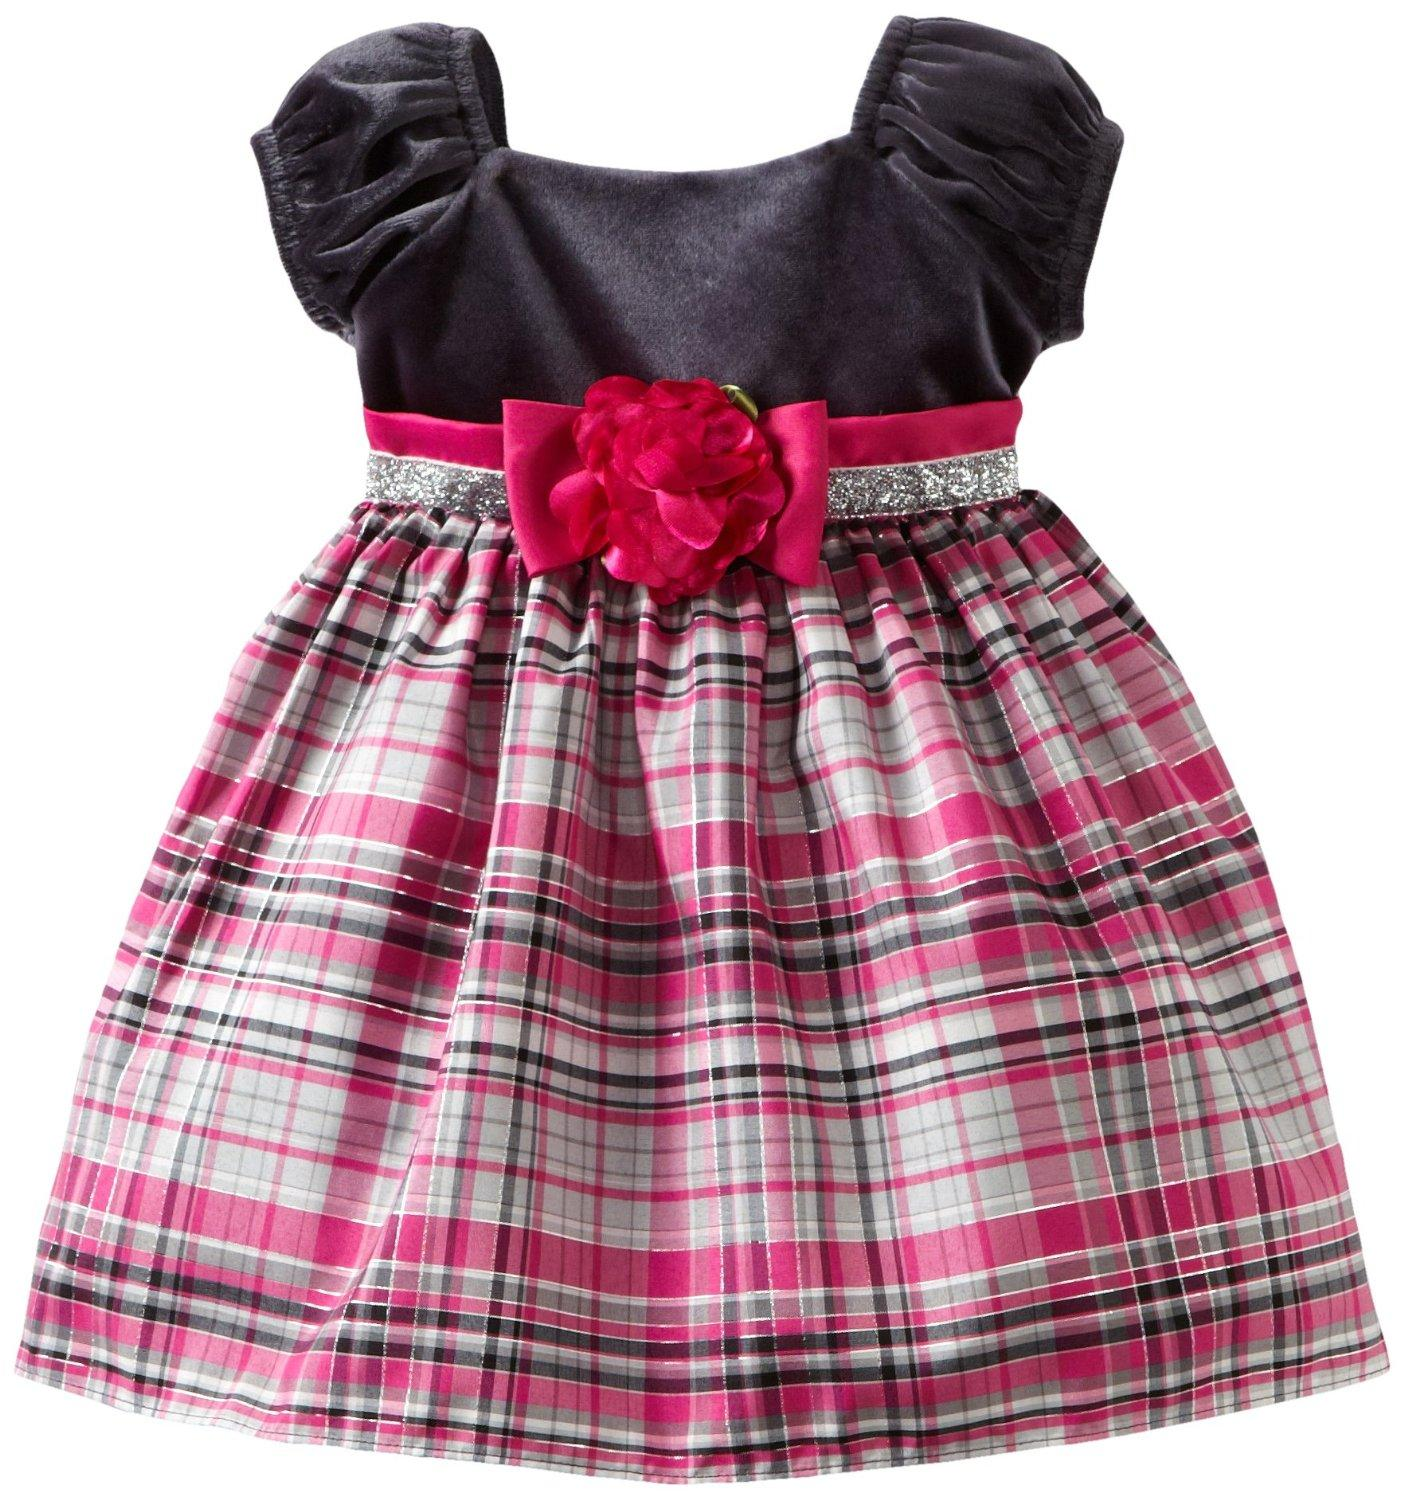 Fresh Pictures Of Youngland Baby Dress Cutest Baby Clothing And